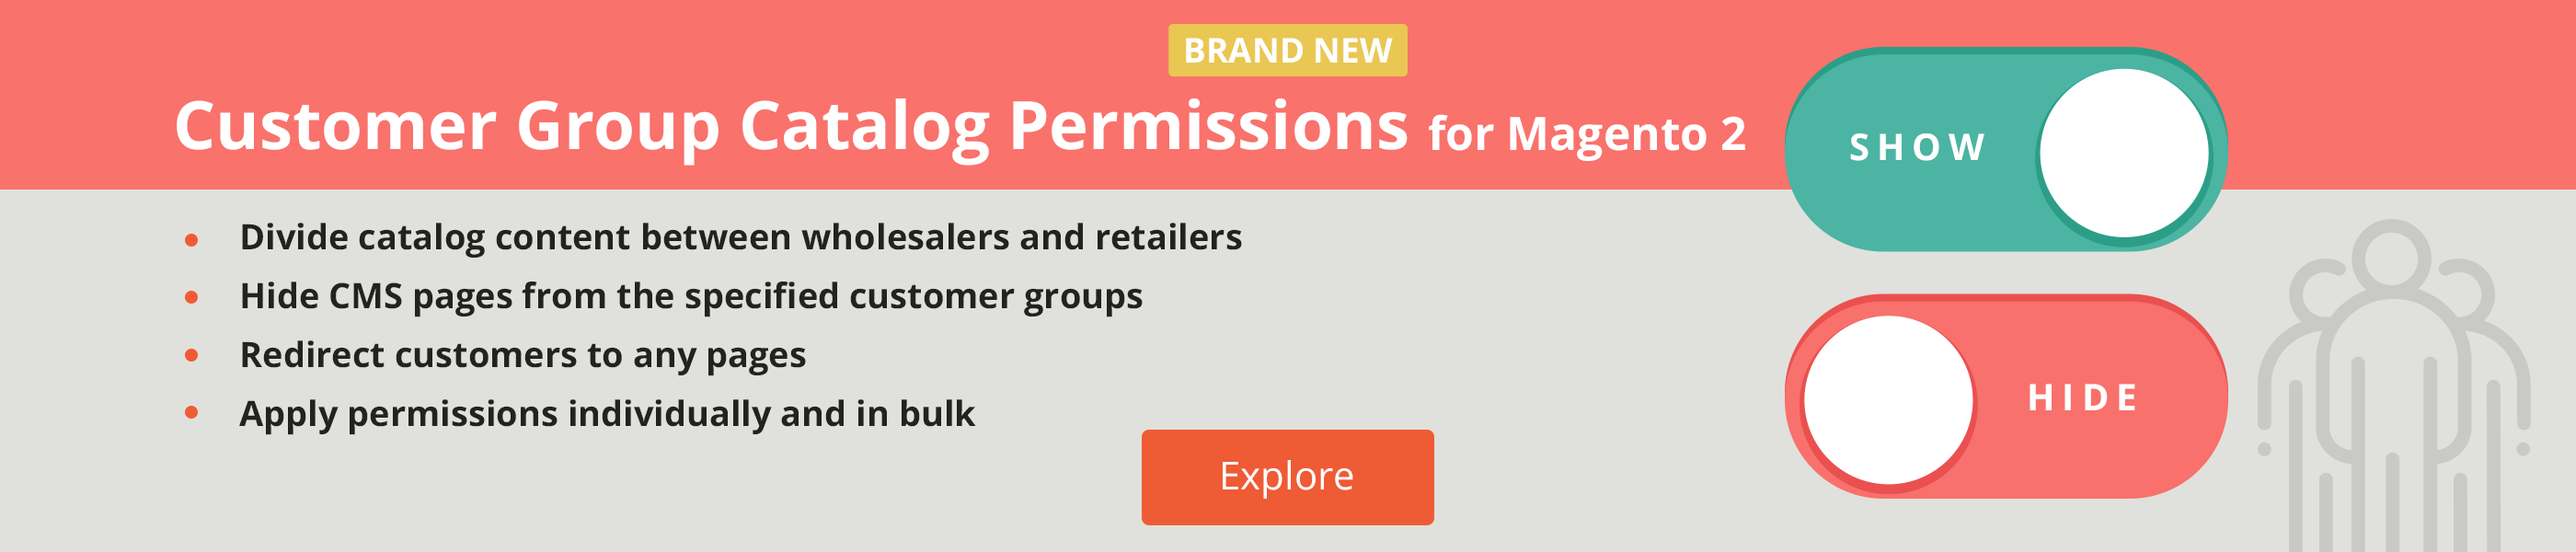 Catalog Permissions Release